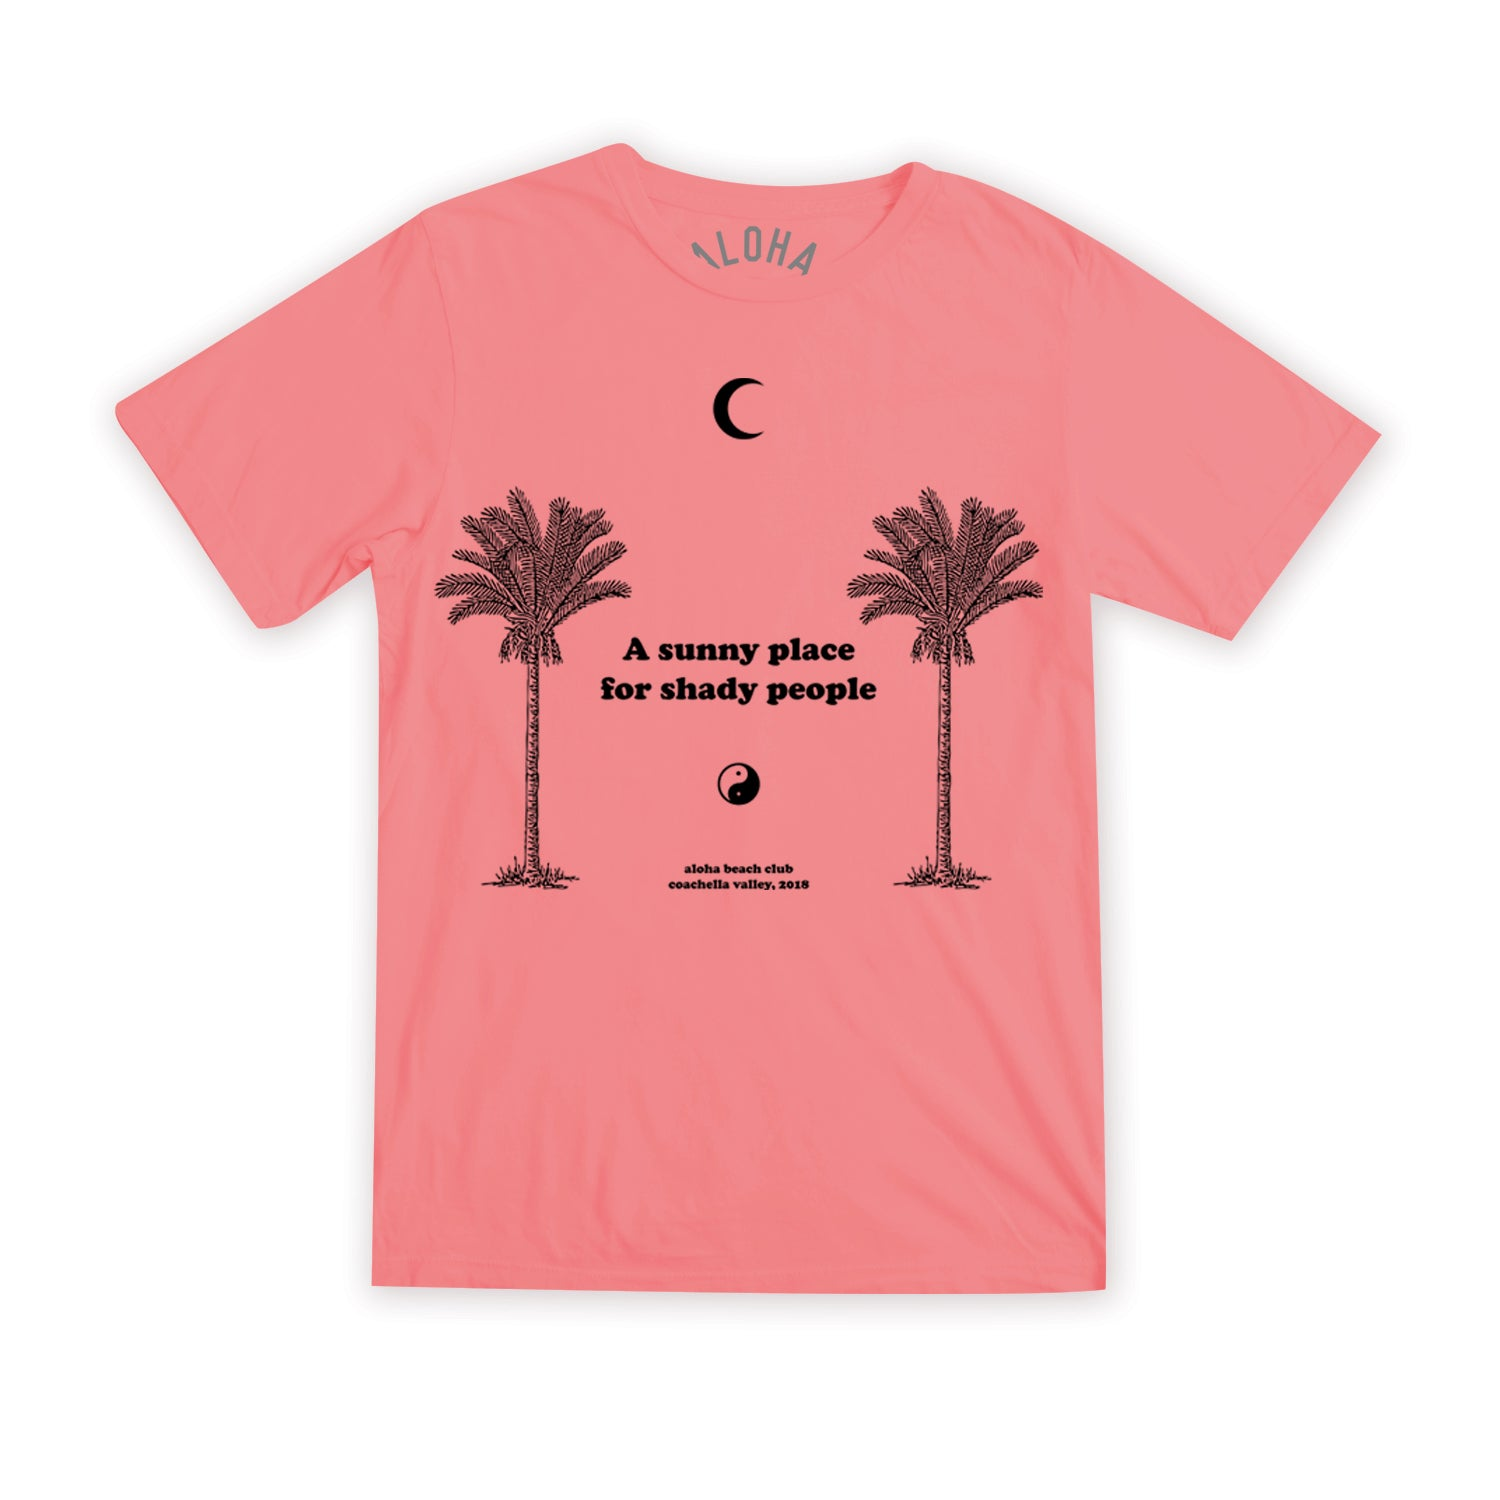 Aloha Beach Club - Unisex Shady Tee Coral - Aloha Beach Club